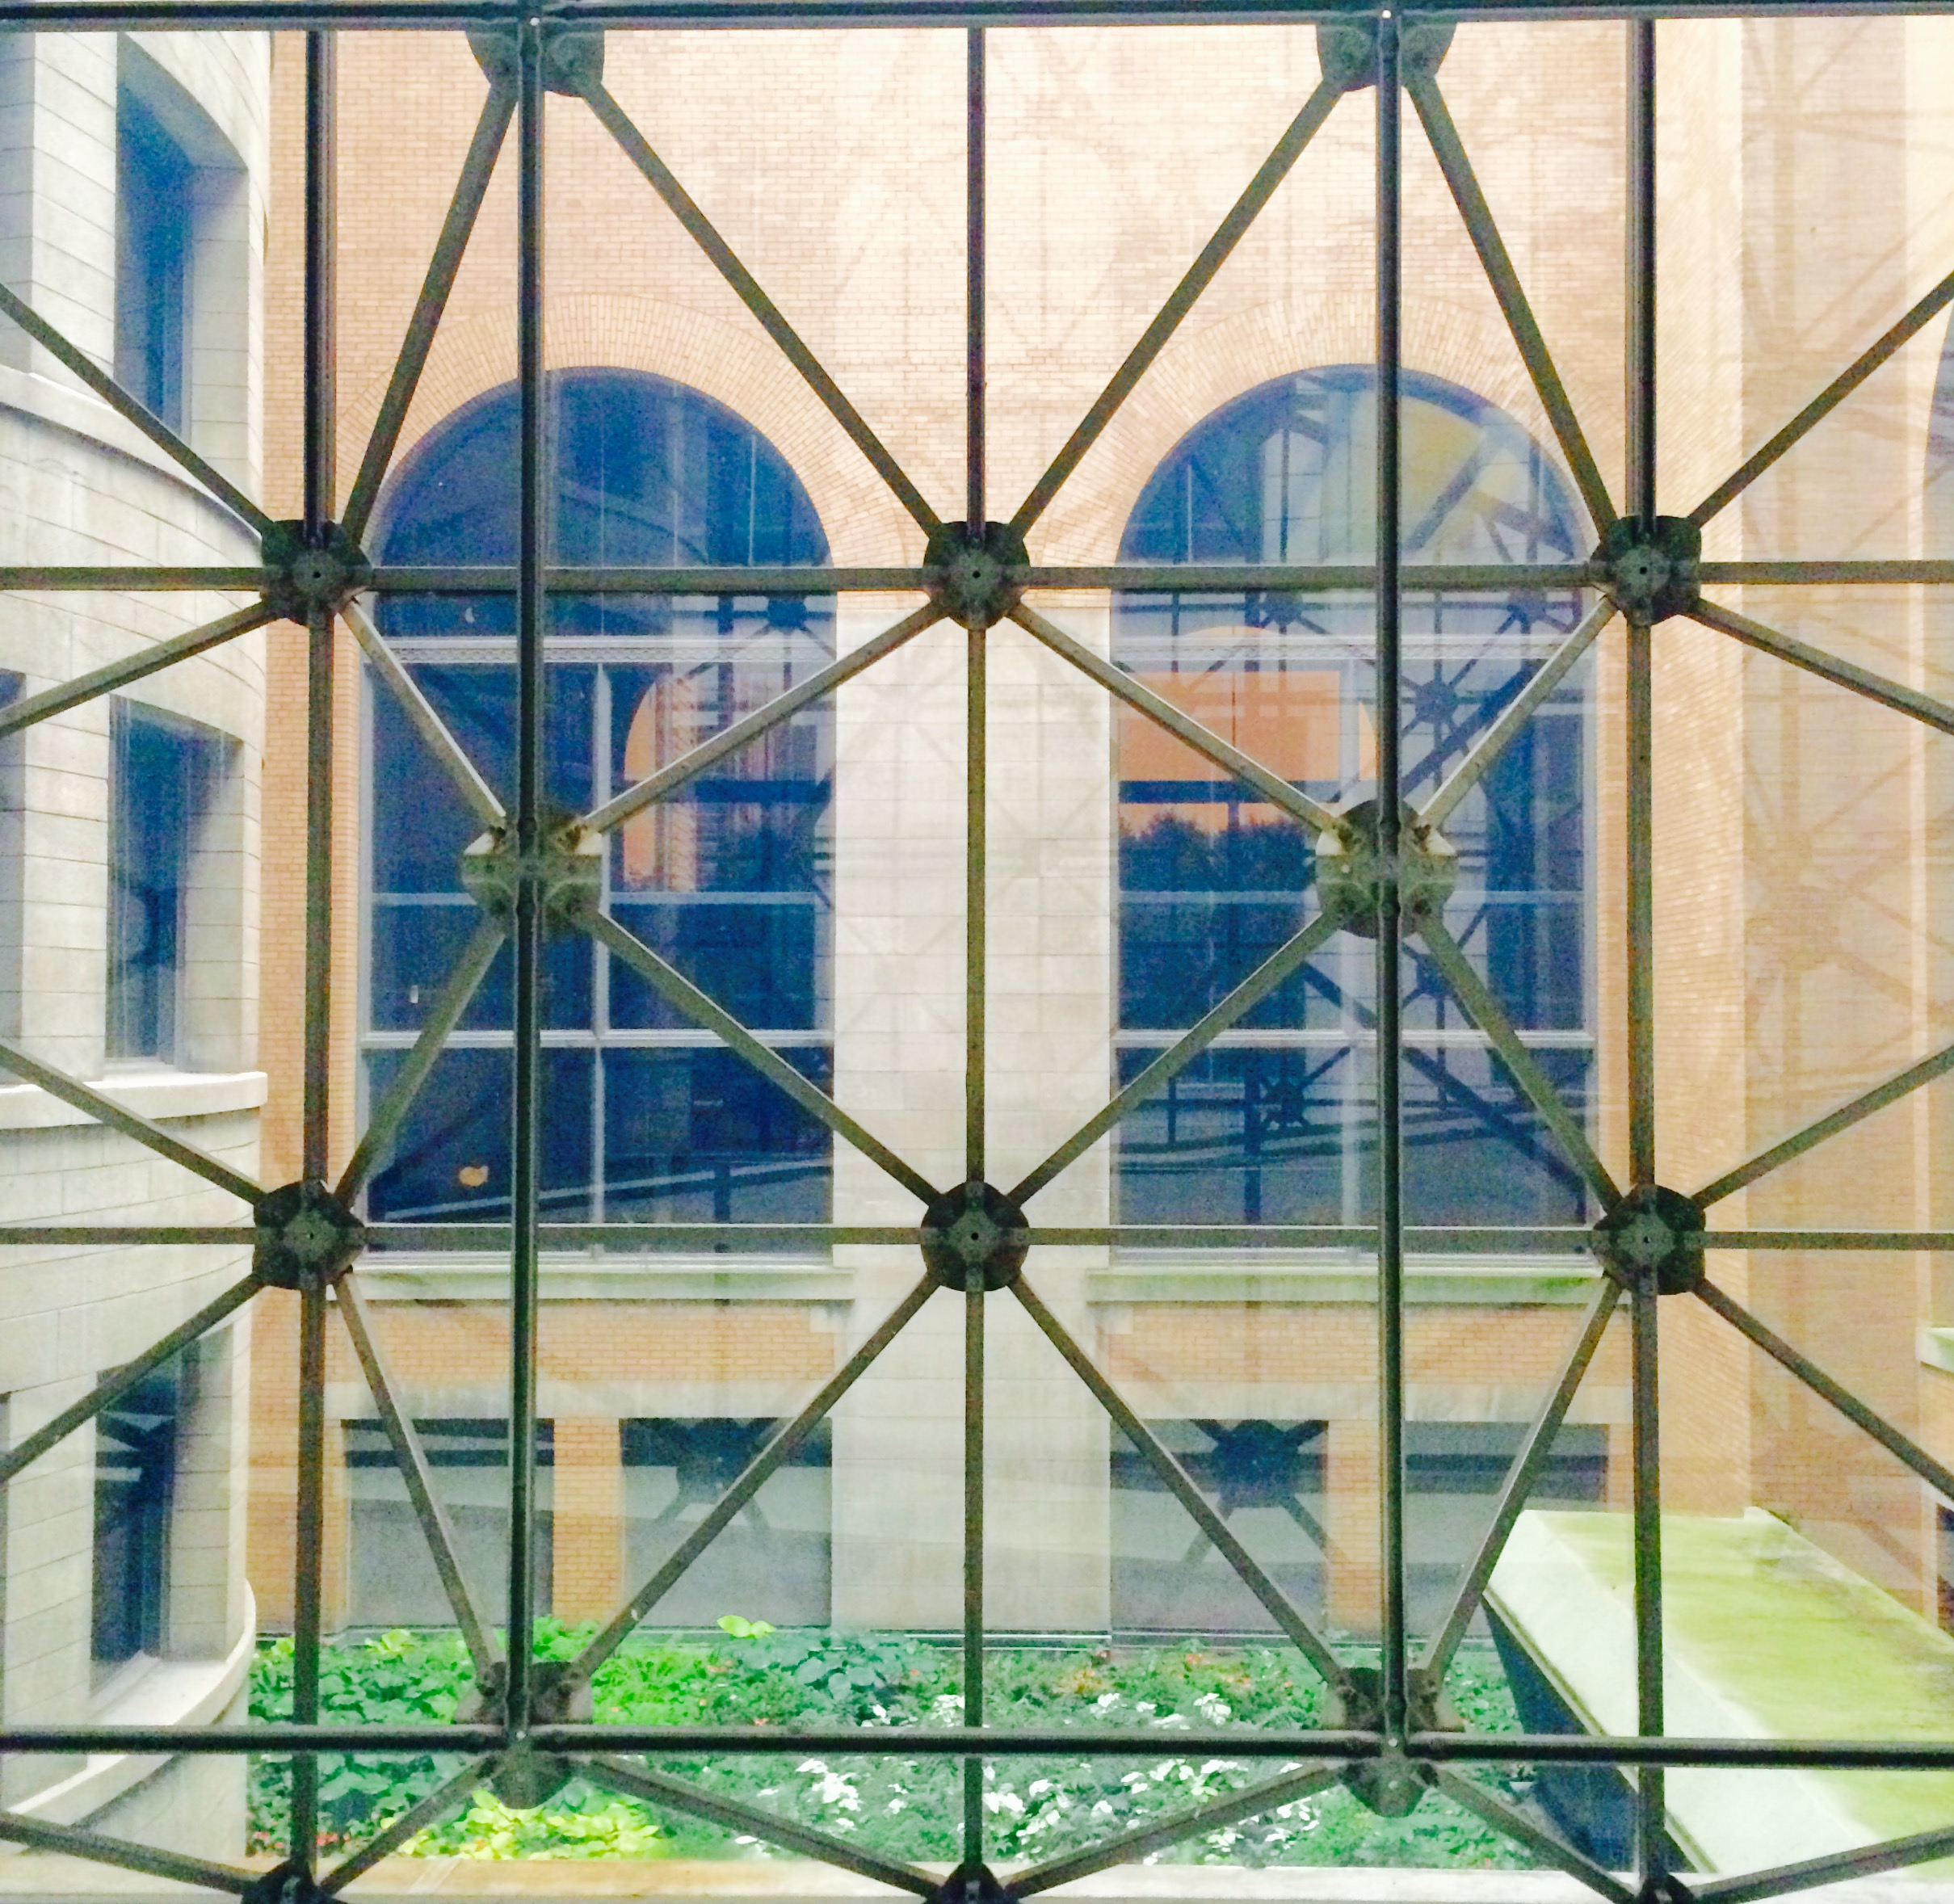 :: view into inner courtyard, Chicago Cultural Center ::